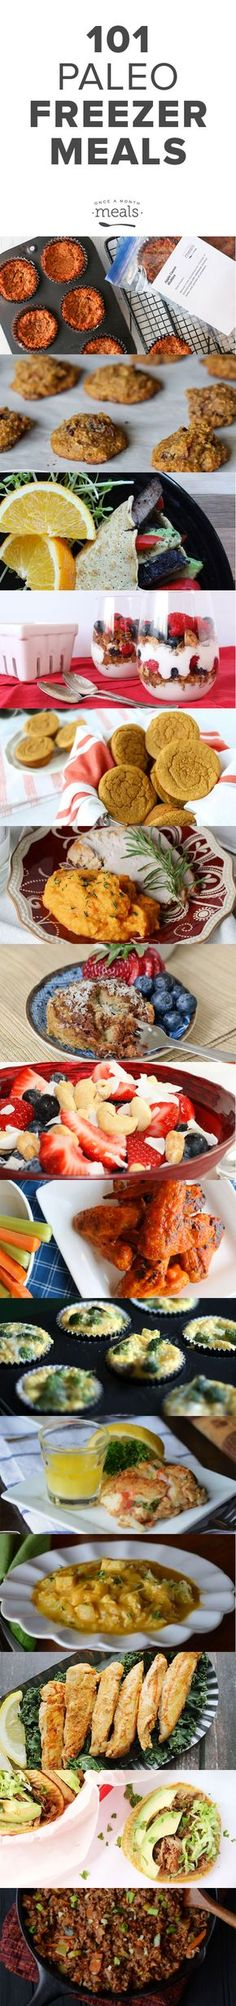 """Has switching to a Paleo diet left you wondering, """"Exactly what can I eat?"""" We have 101 answers – Paleo Freezer Meals will simplify your meal planning so that you can live a Paleo lifestyle even if you are busy."""